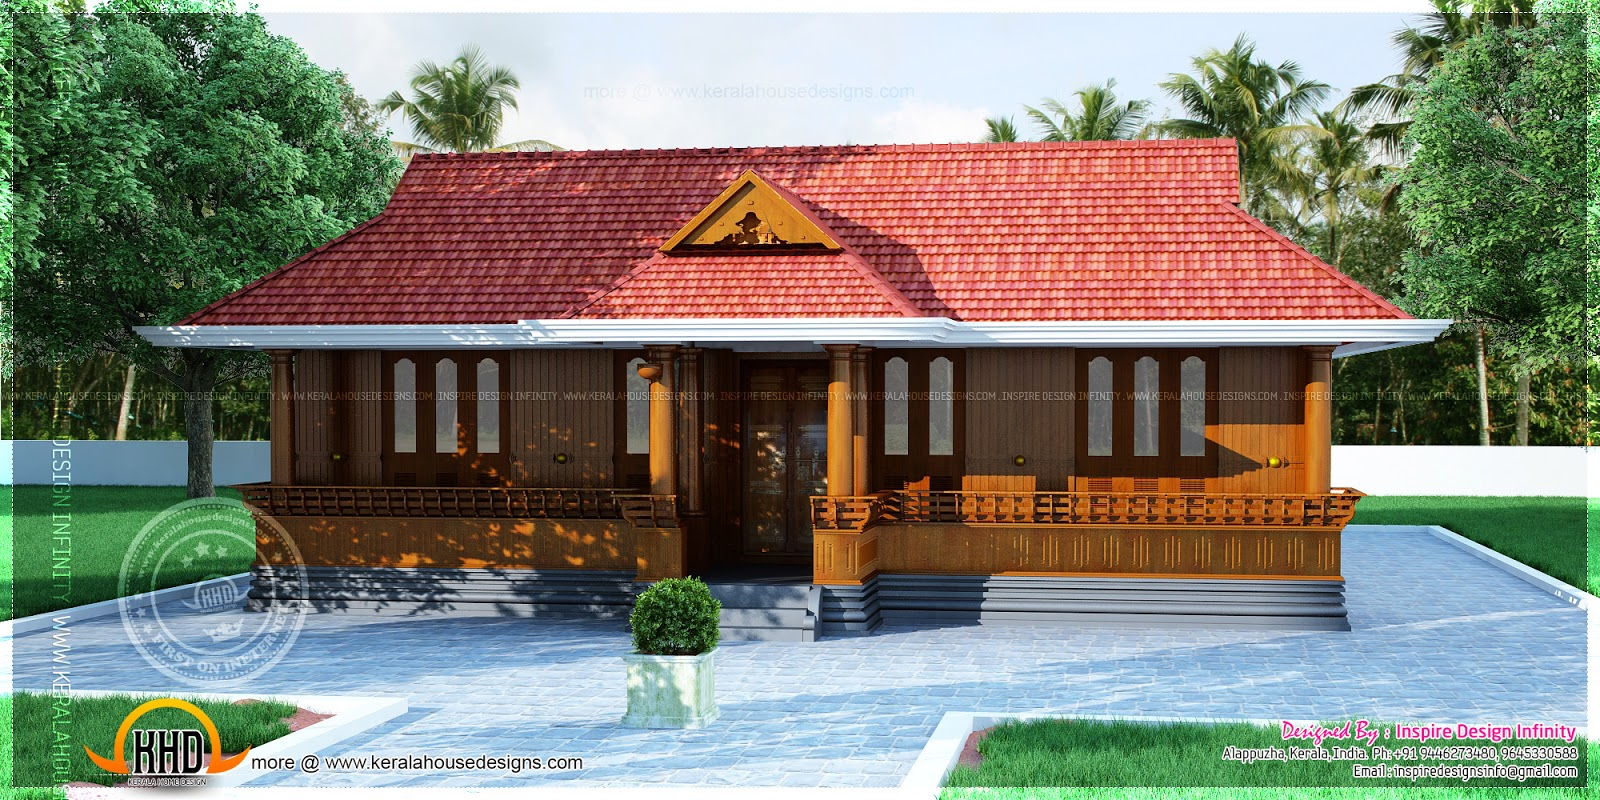 Nadumuttam veedu joy studio design gallery best design for Kerala veedu design